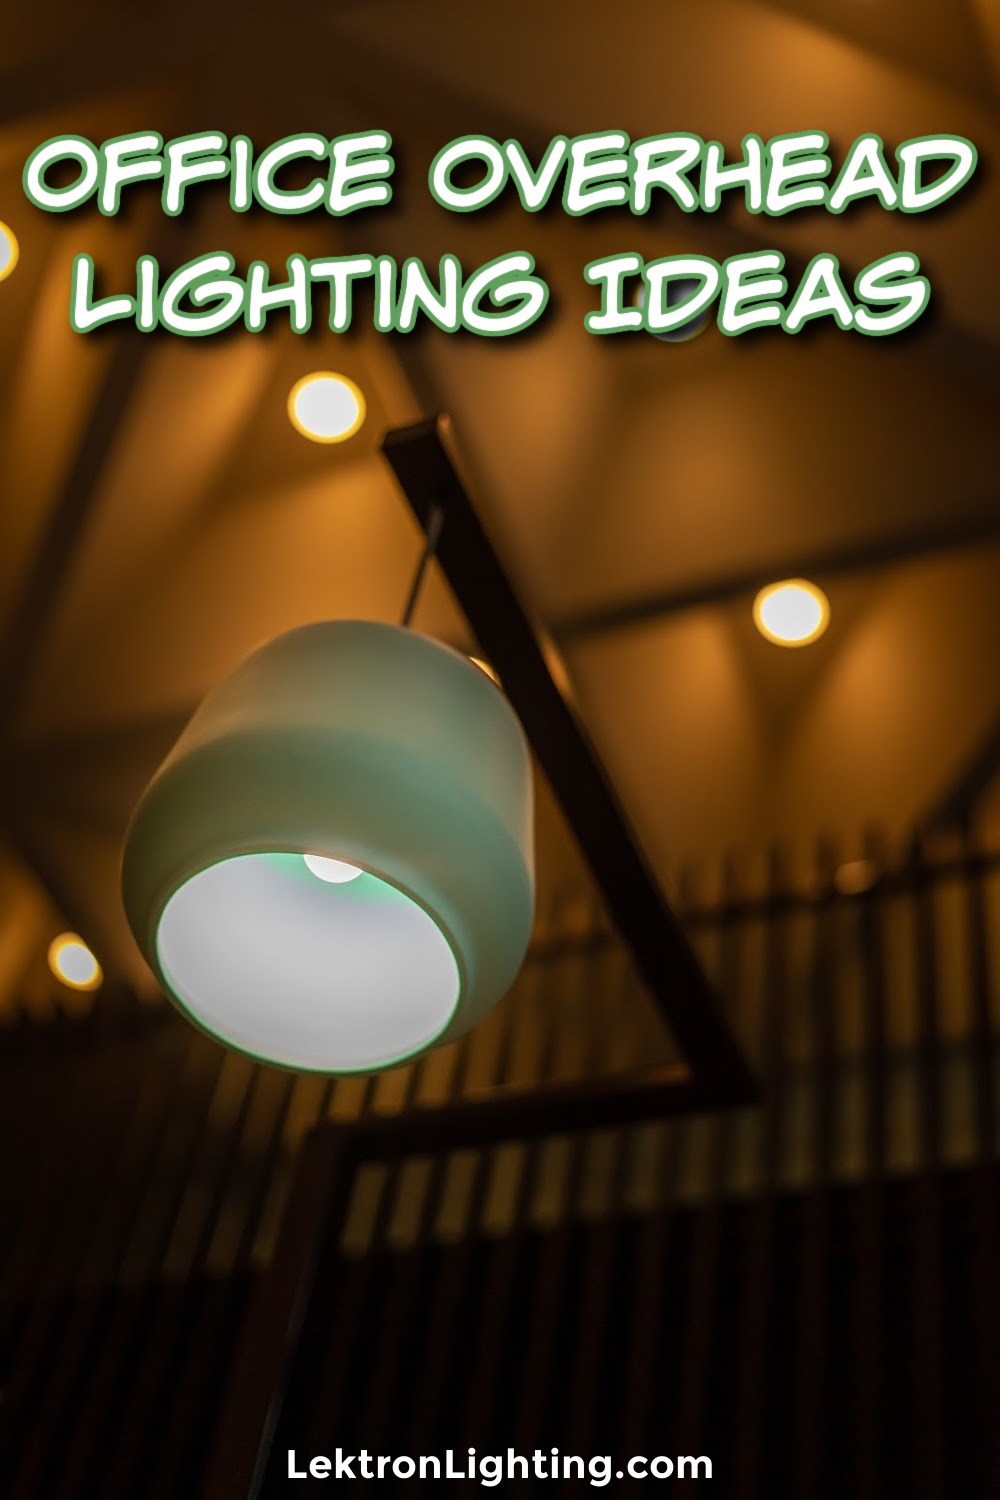 Office overhead lighting ideas can help you conserve energy in your warehouse and use that energy in better ways.